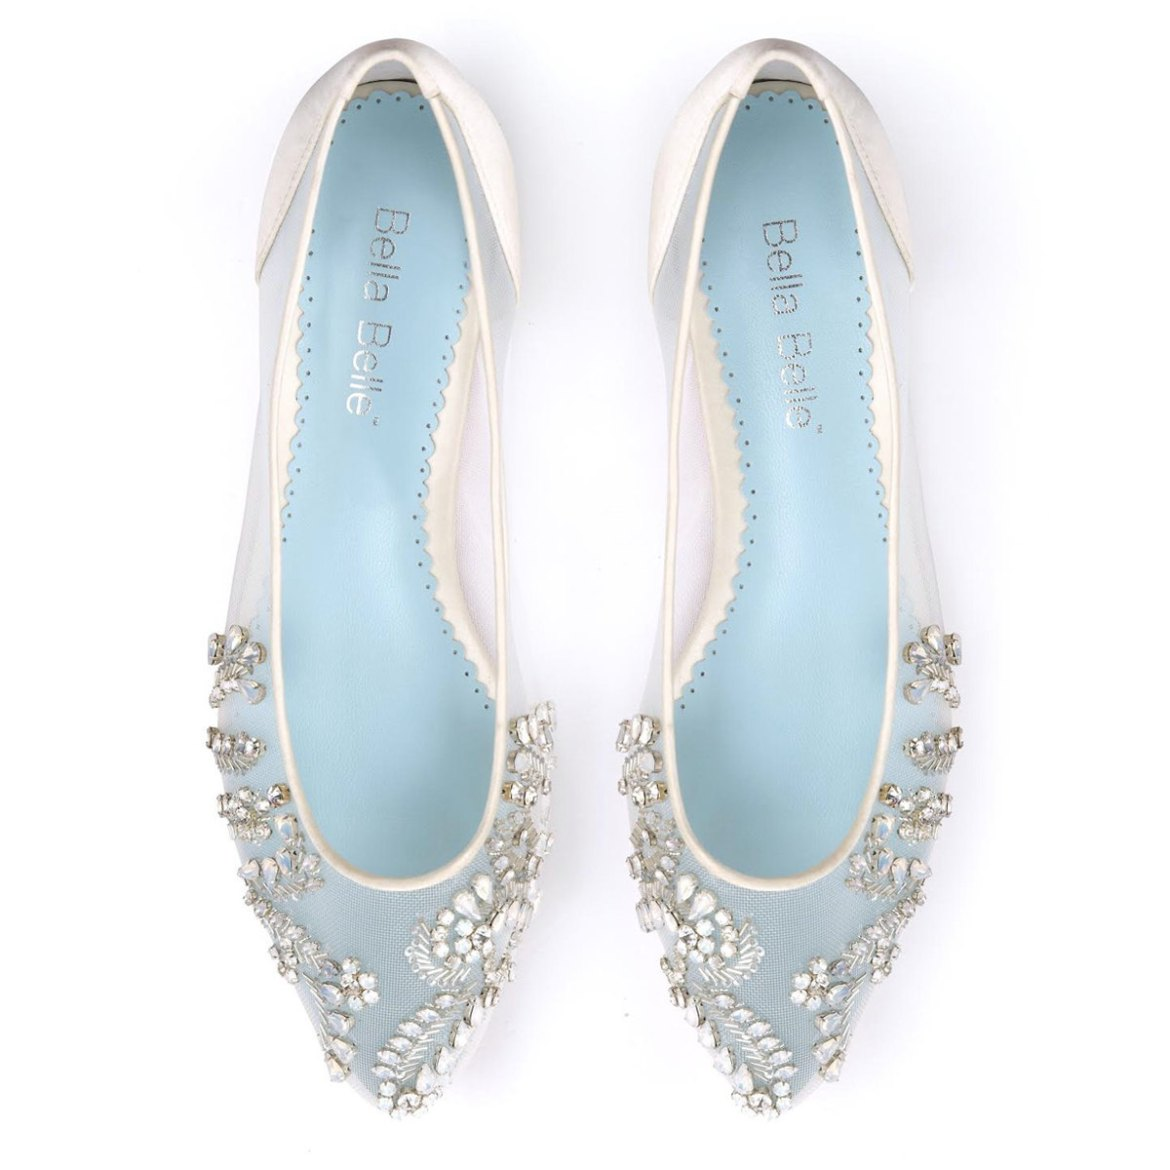 Pointed Toe Bridal Shoes That Will Make You So Happy